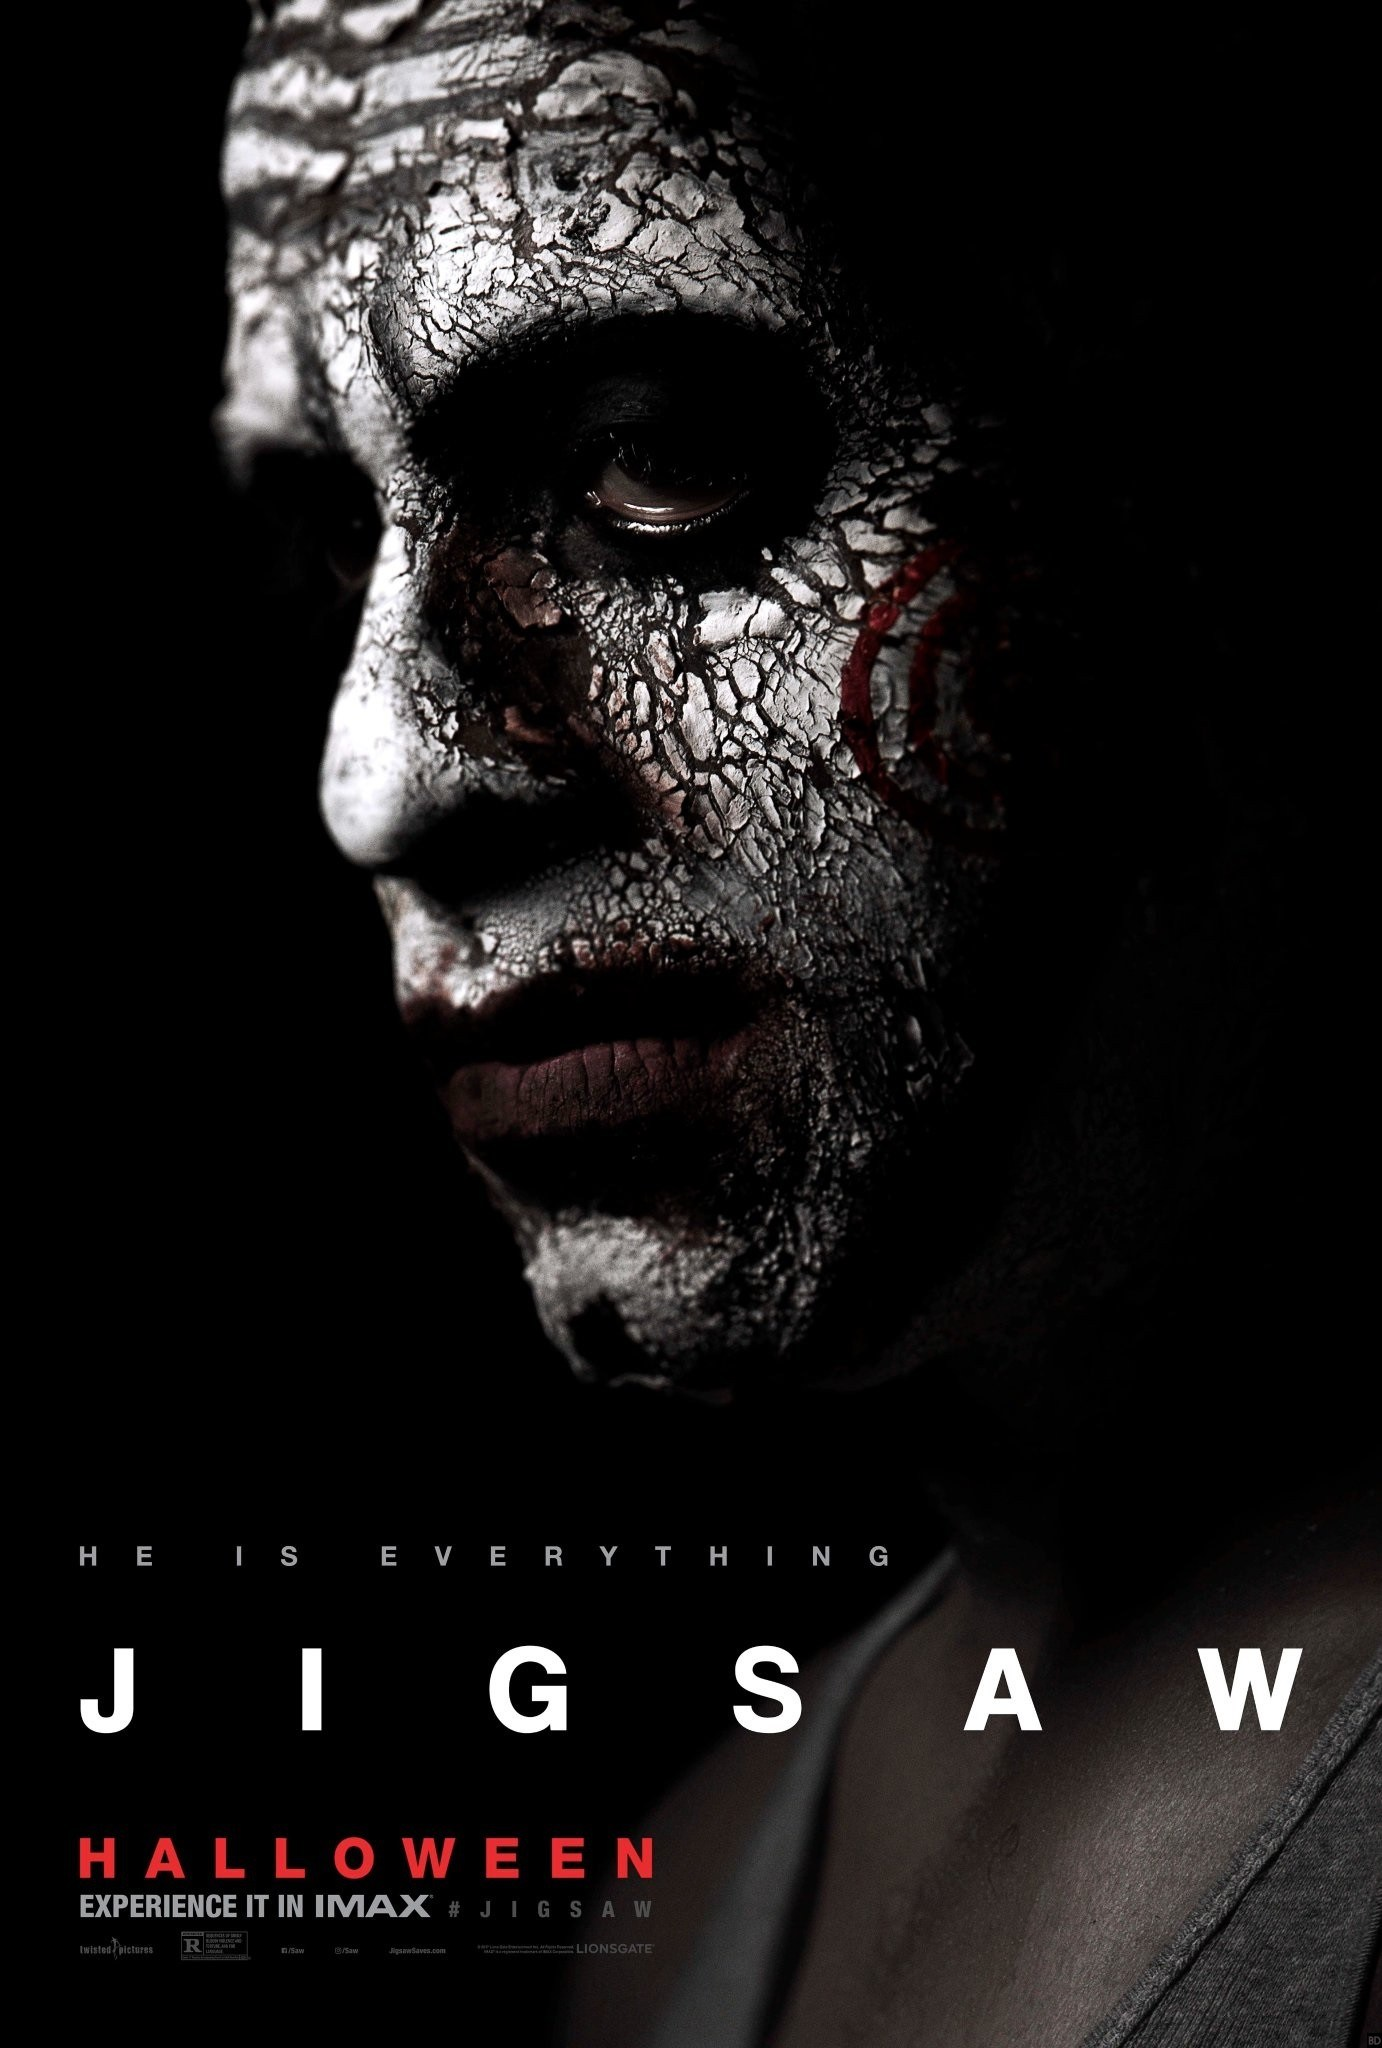 Jigsaw He is Everything